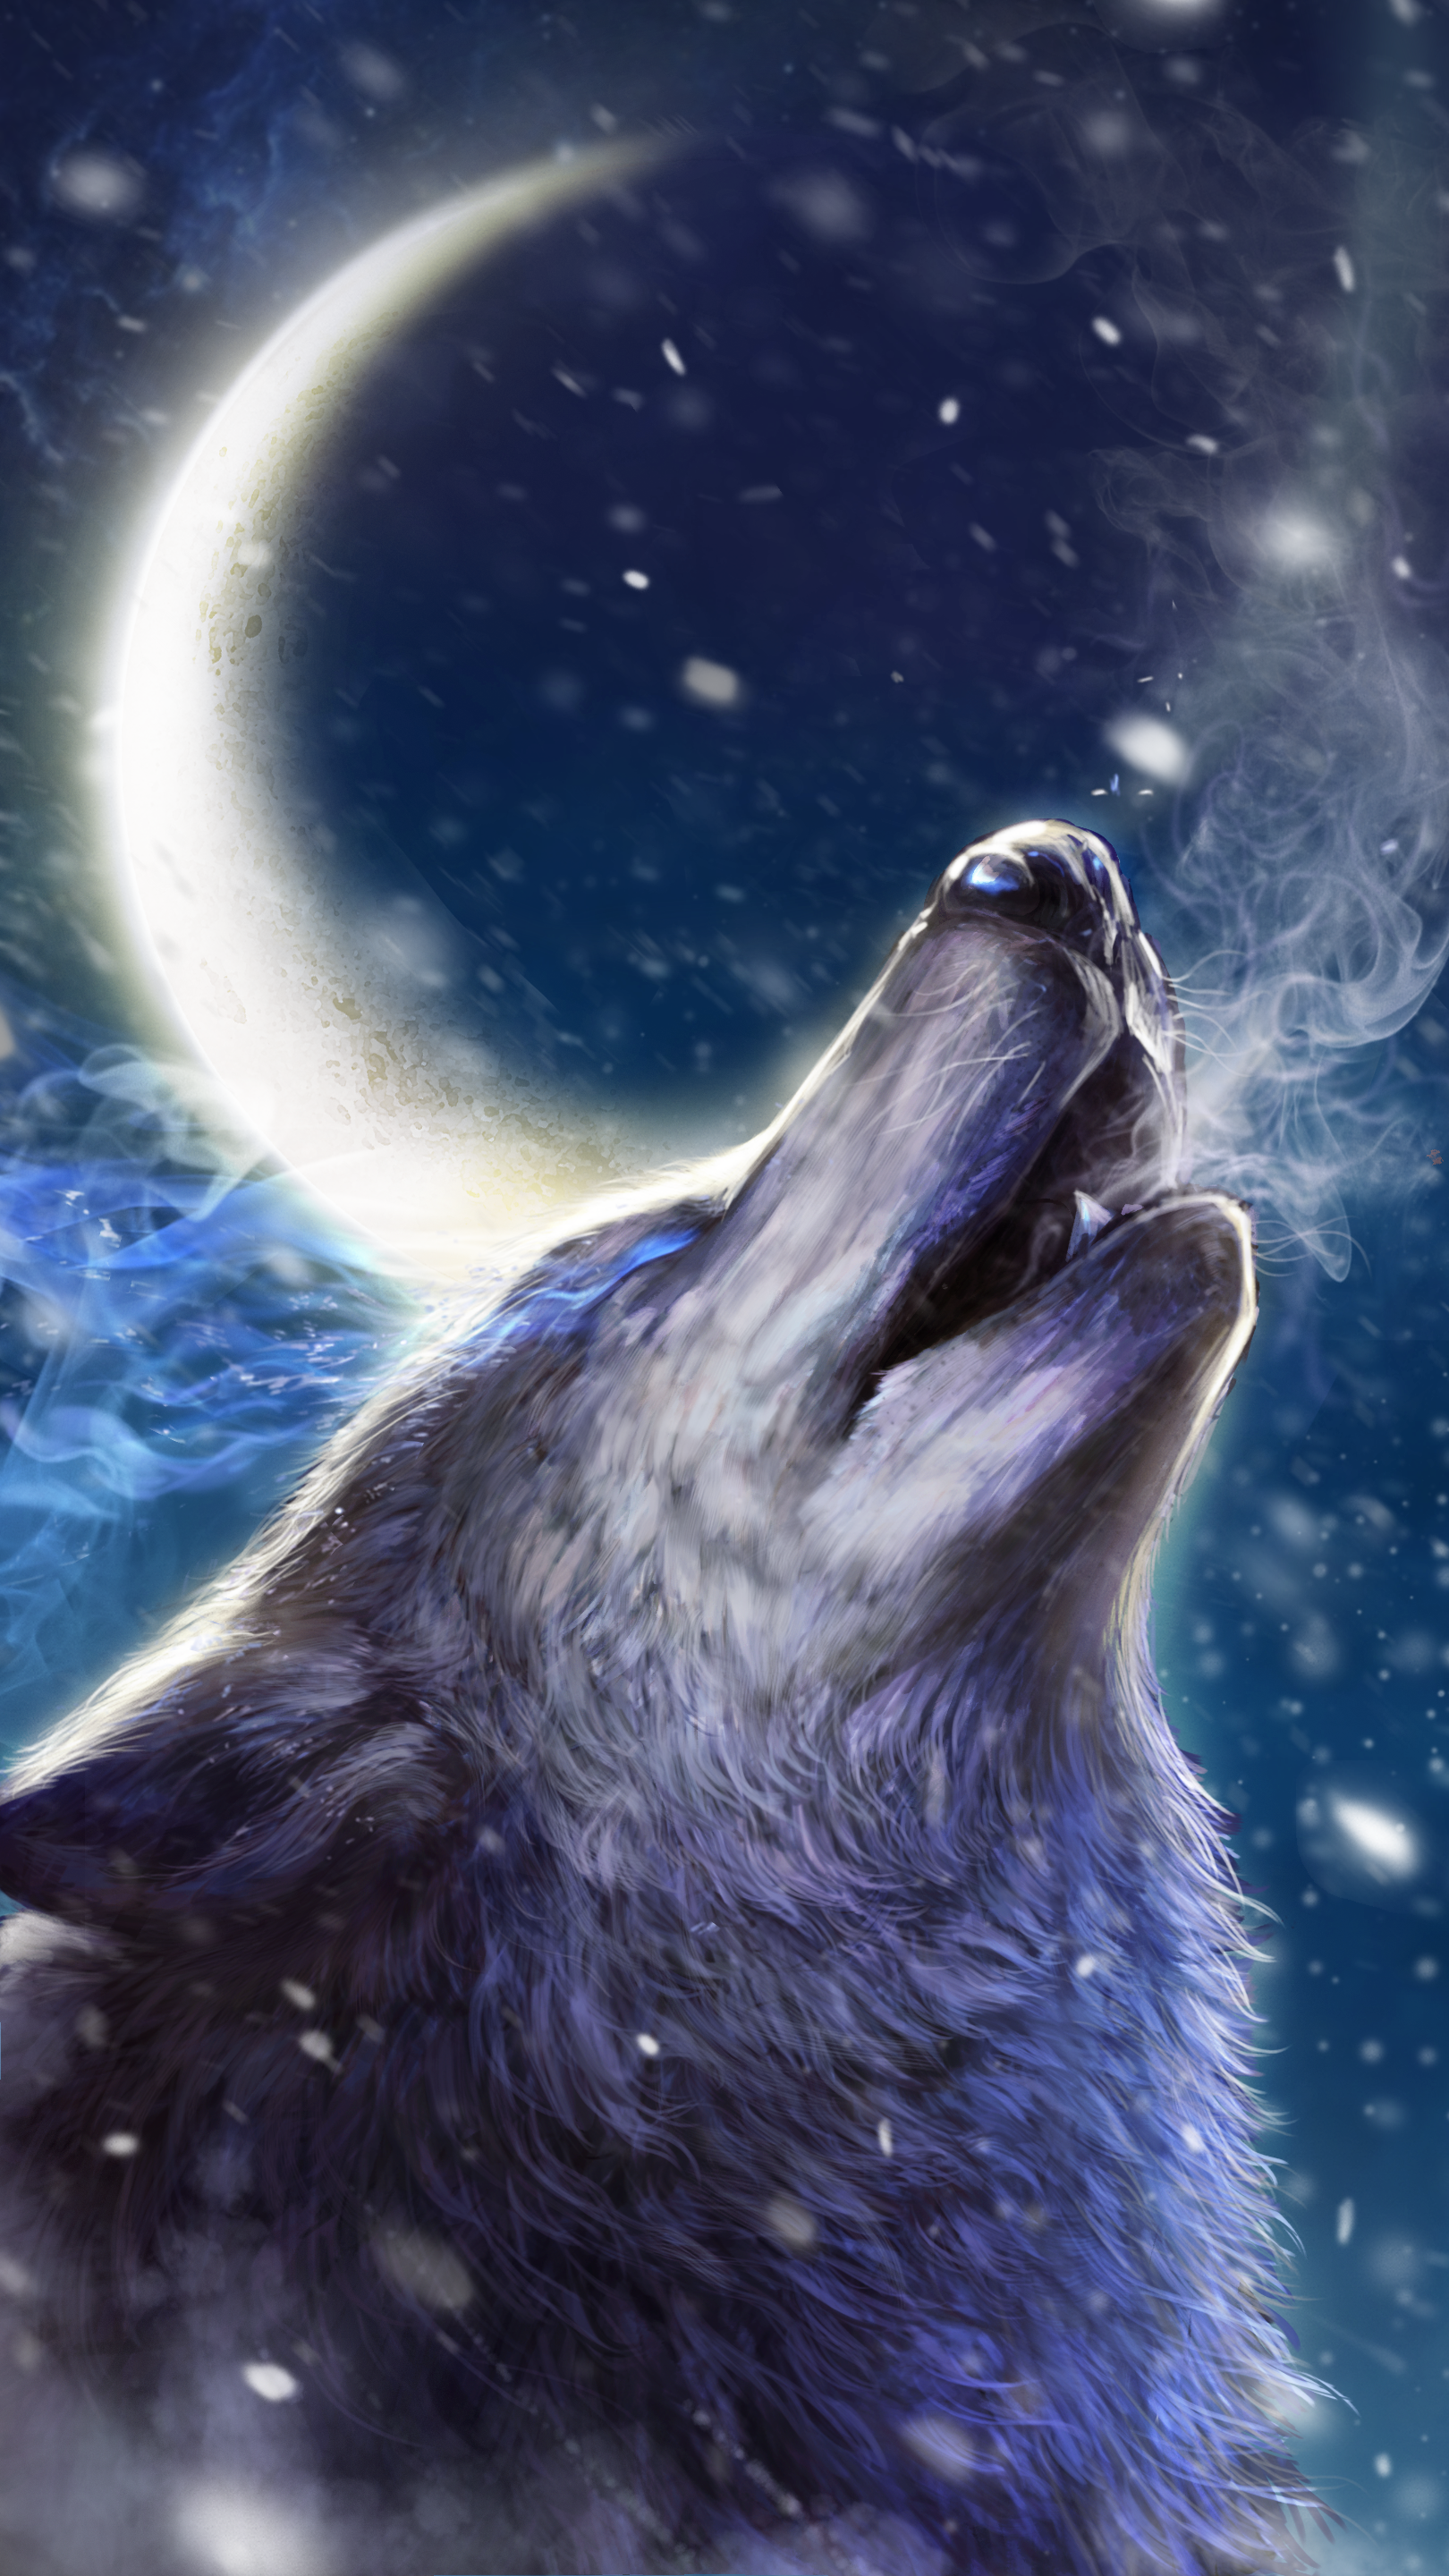 Coole Wolf Bilder Howling Wolf Live Wallpaper Android Live Wallpapers